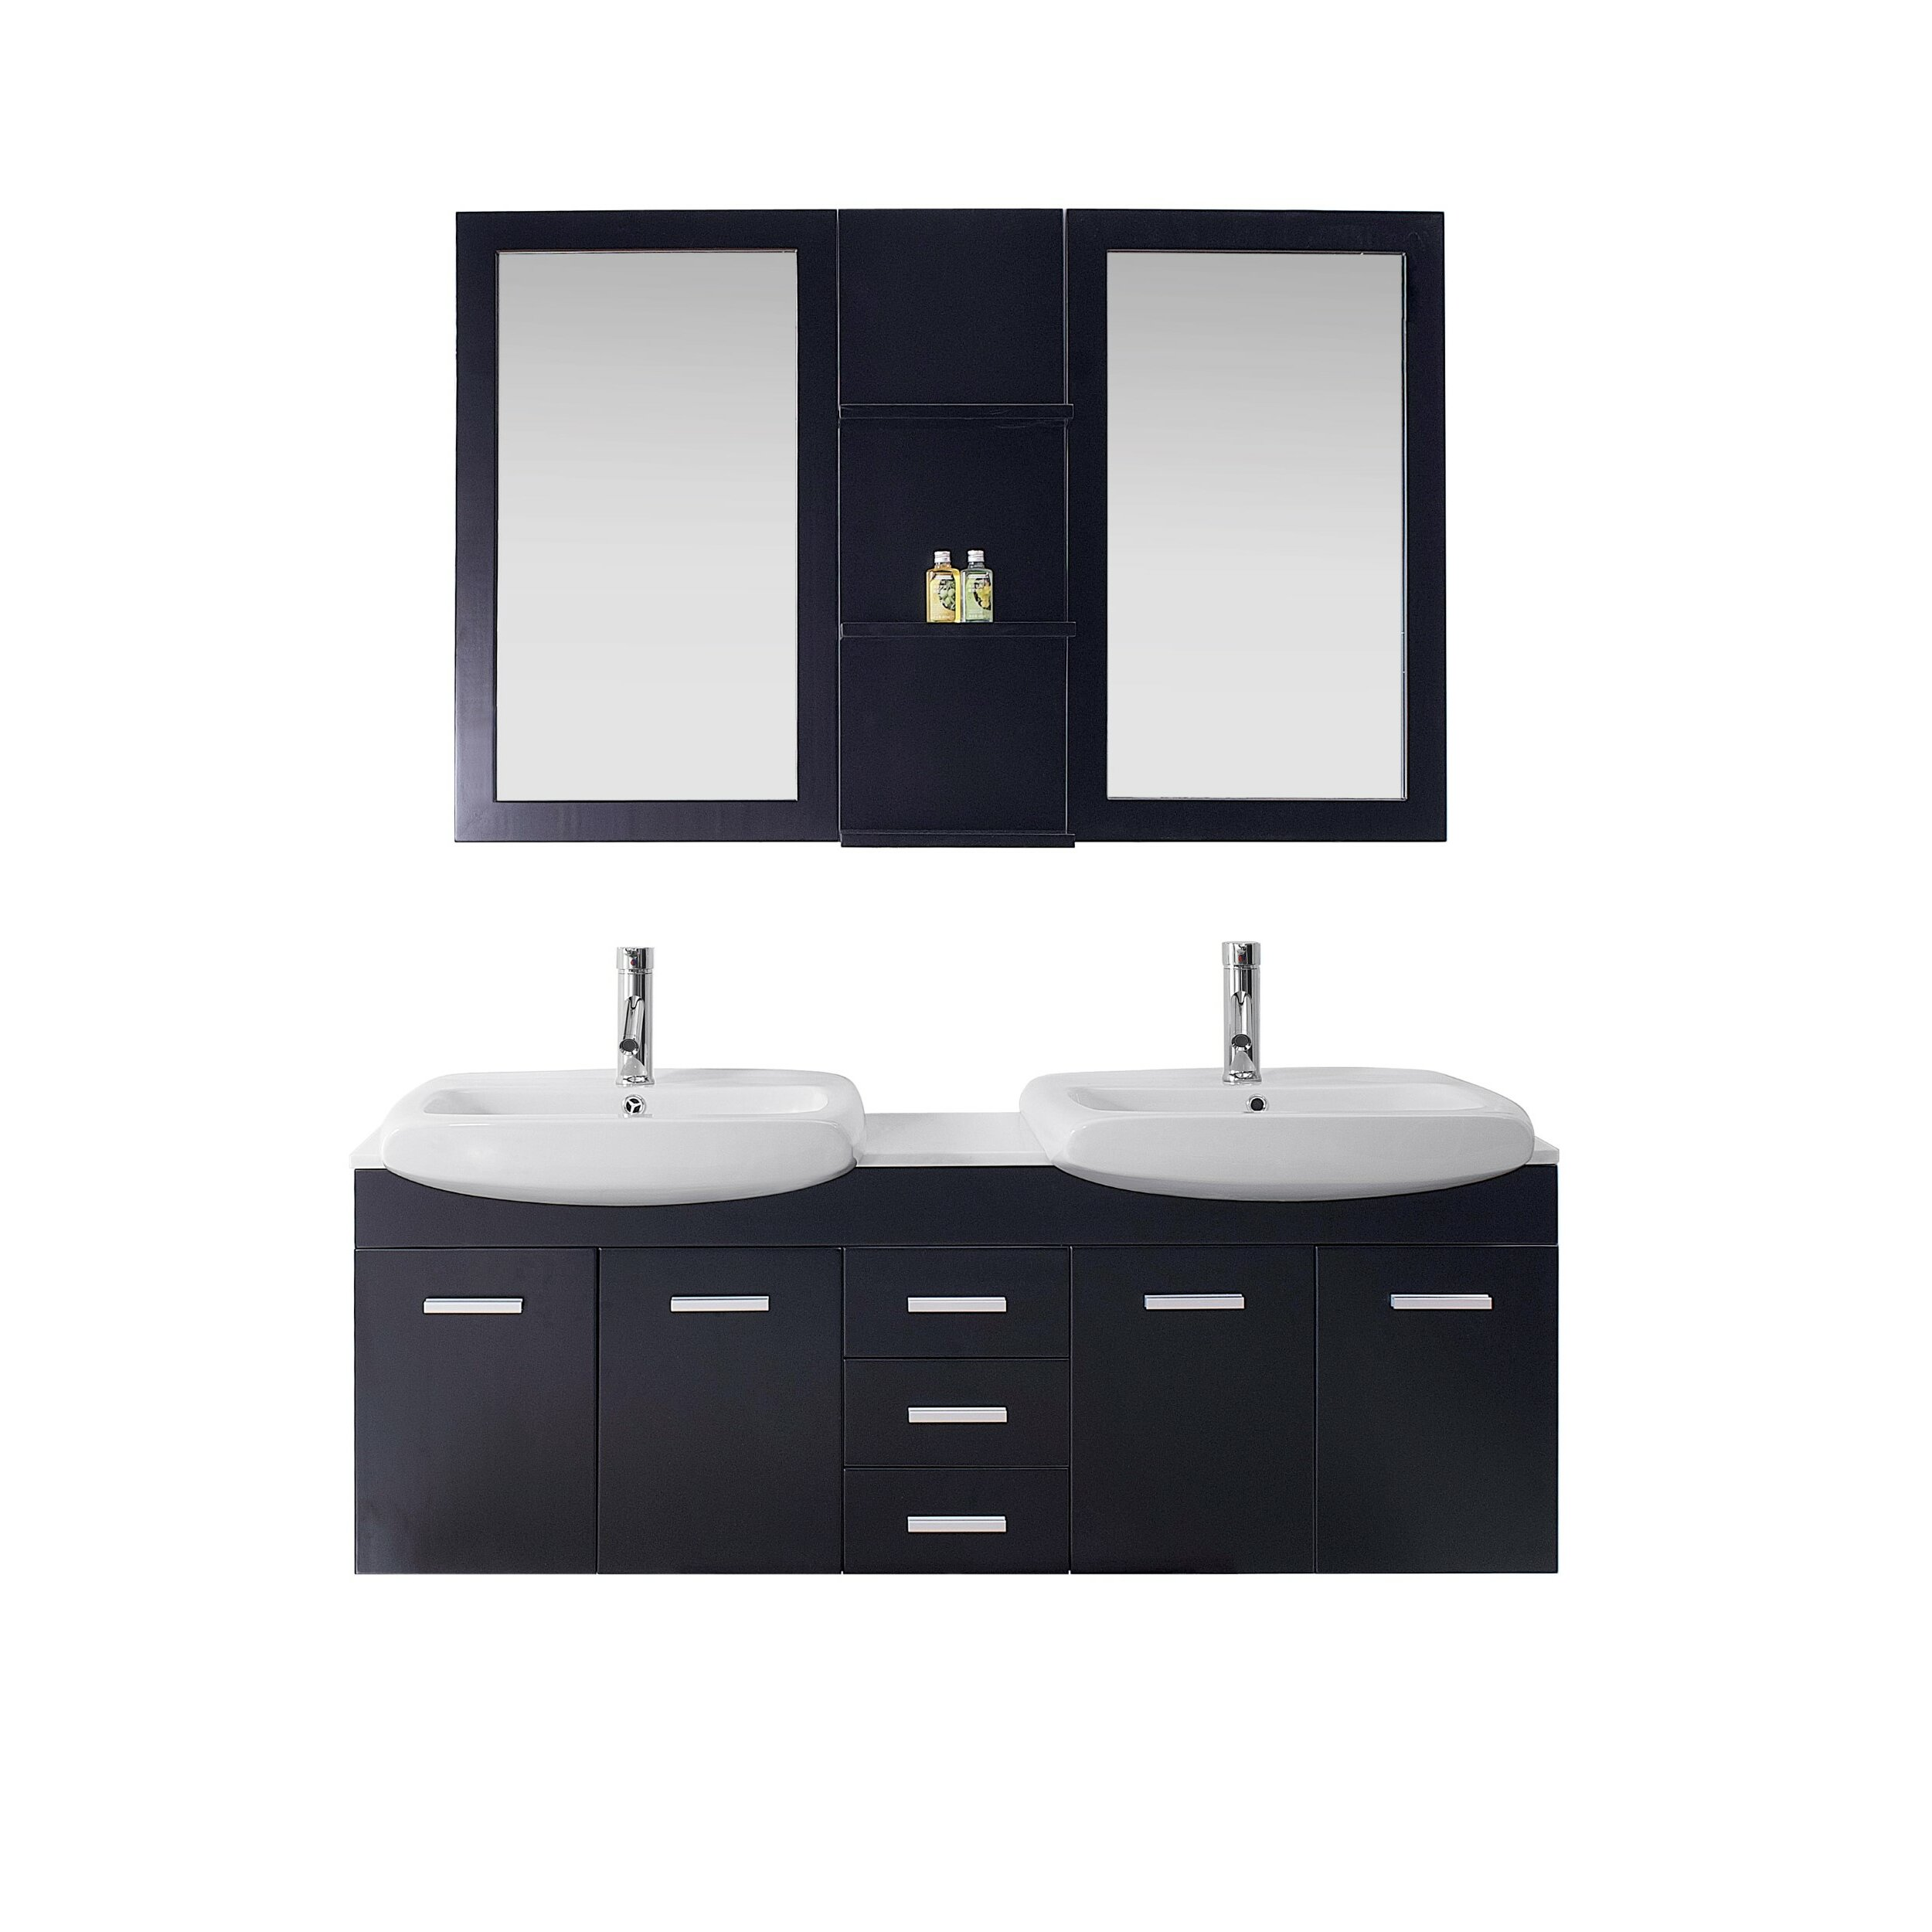 Virtu ultra modern series 59 double bathroom vanity set for Modern white bathroom vanity